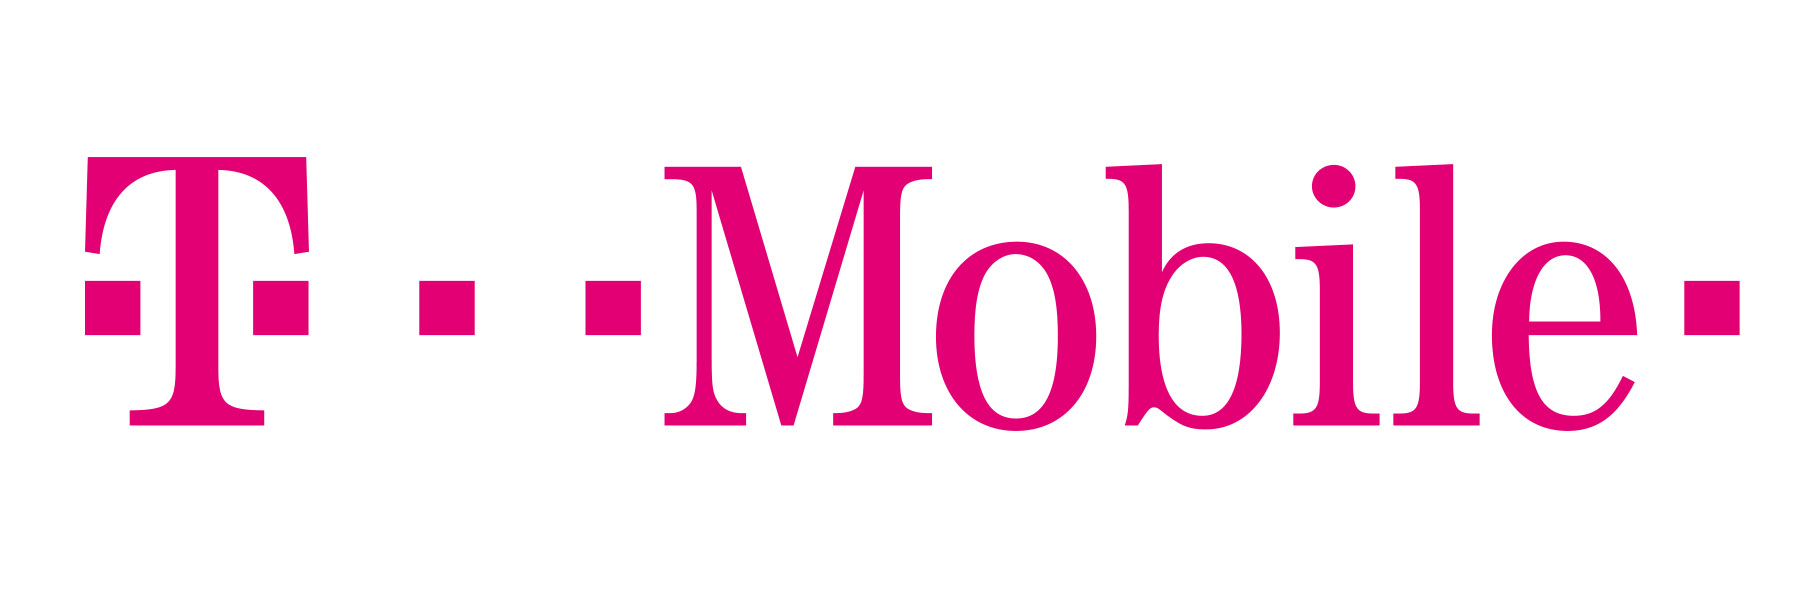 Introducing GoPoint: T-Mobile Expands into Mobile Payments to Solve